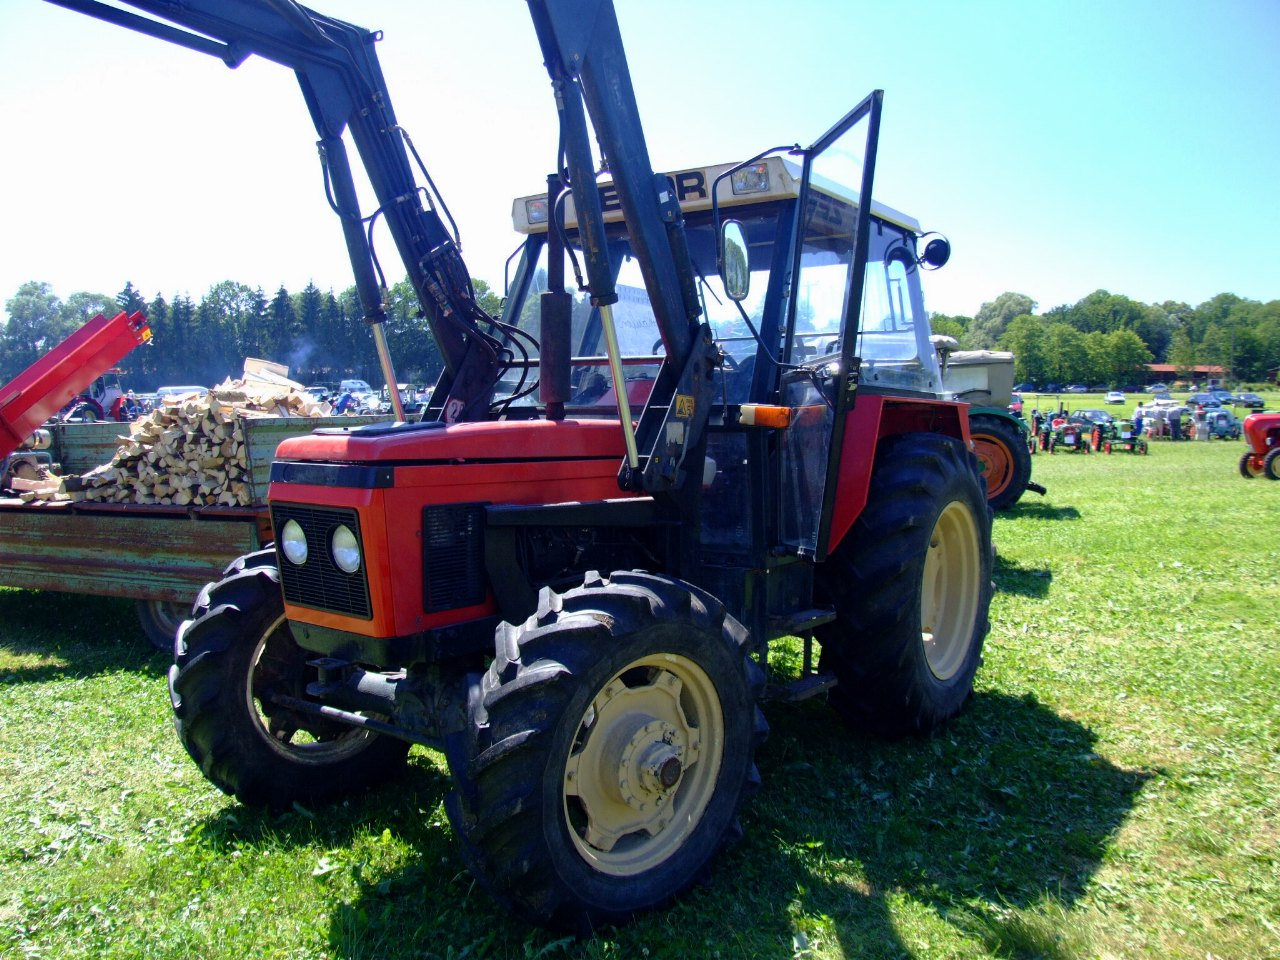 Ford farm tractors sorted by model